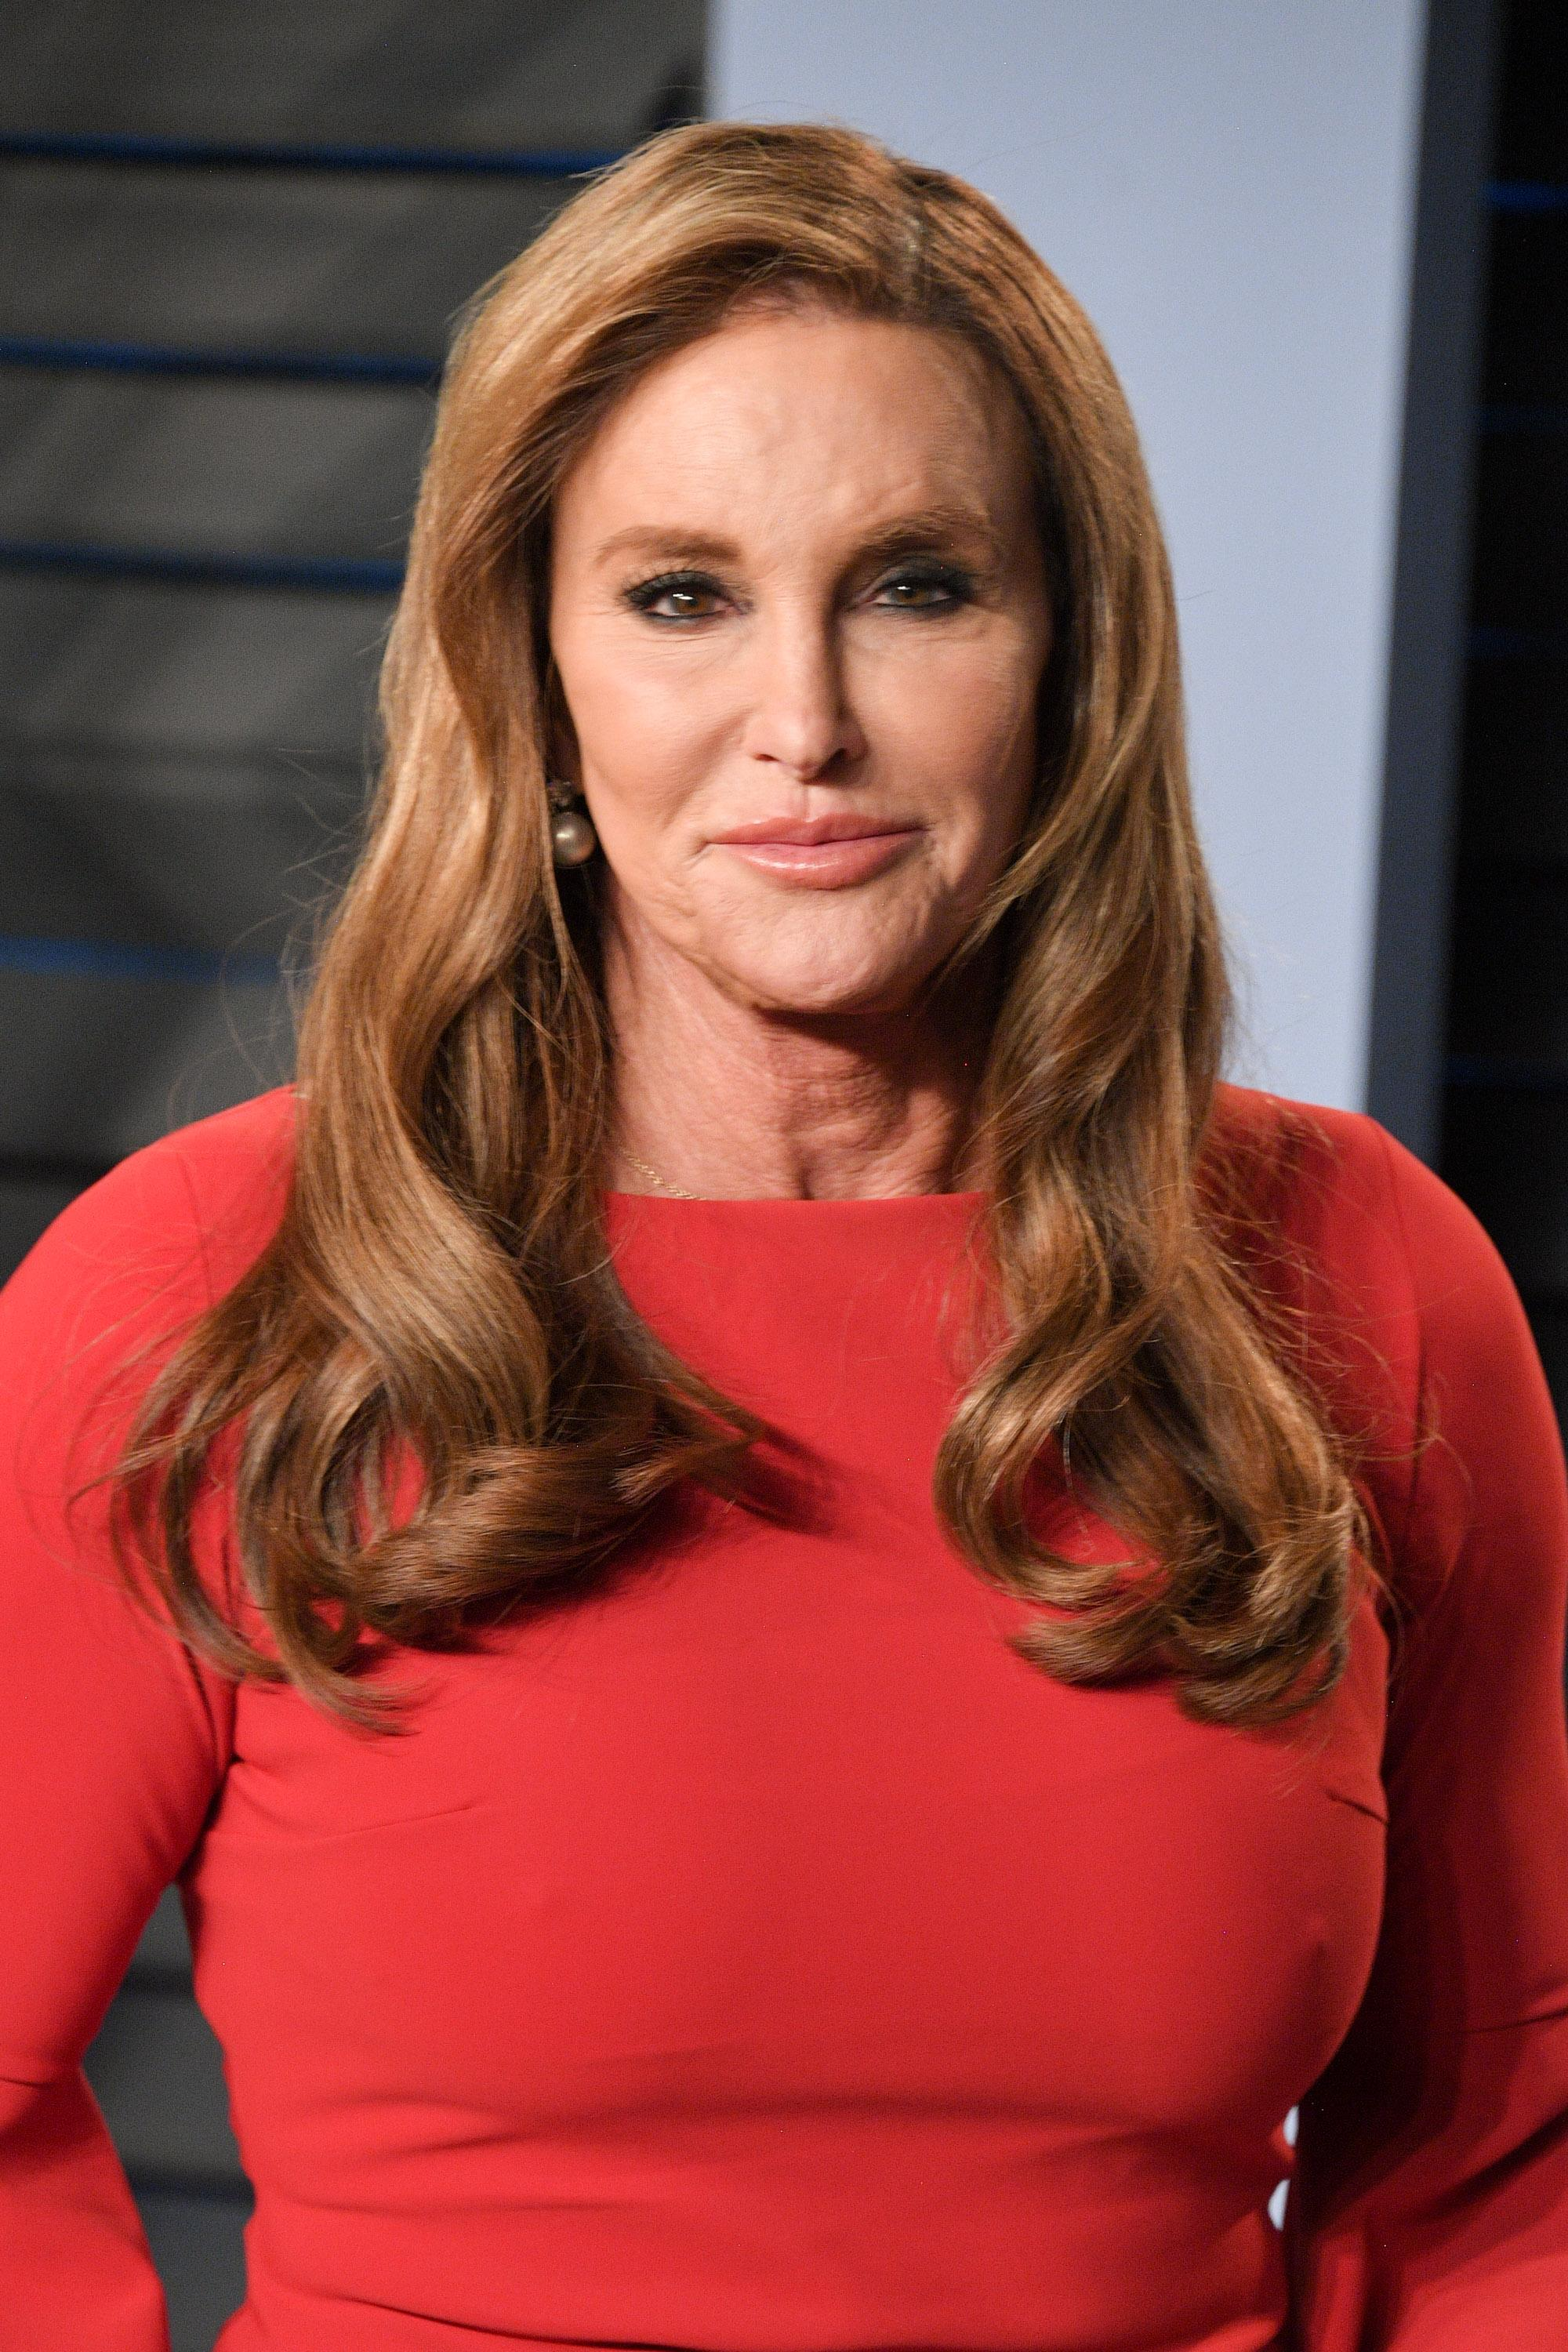 Caitlyn Jenner Nude Photos 26